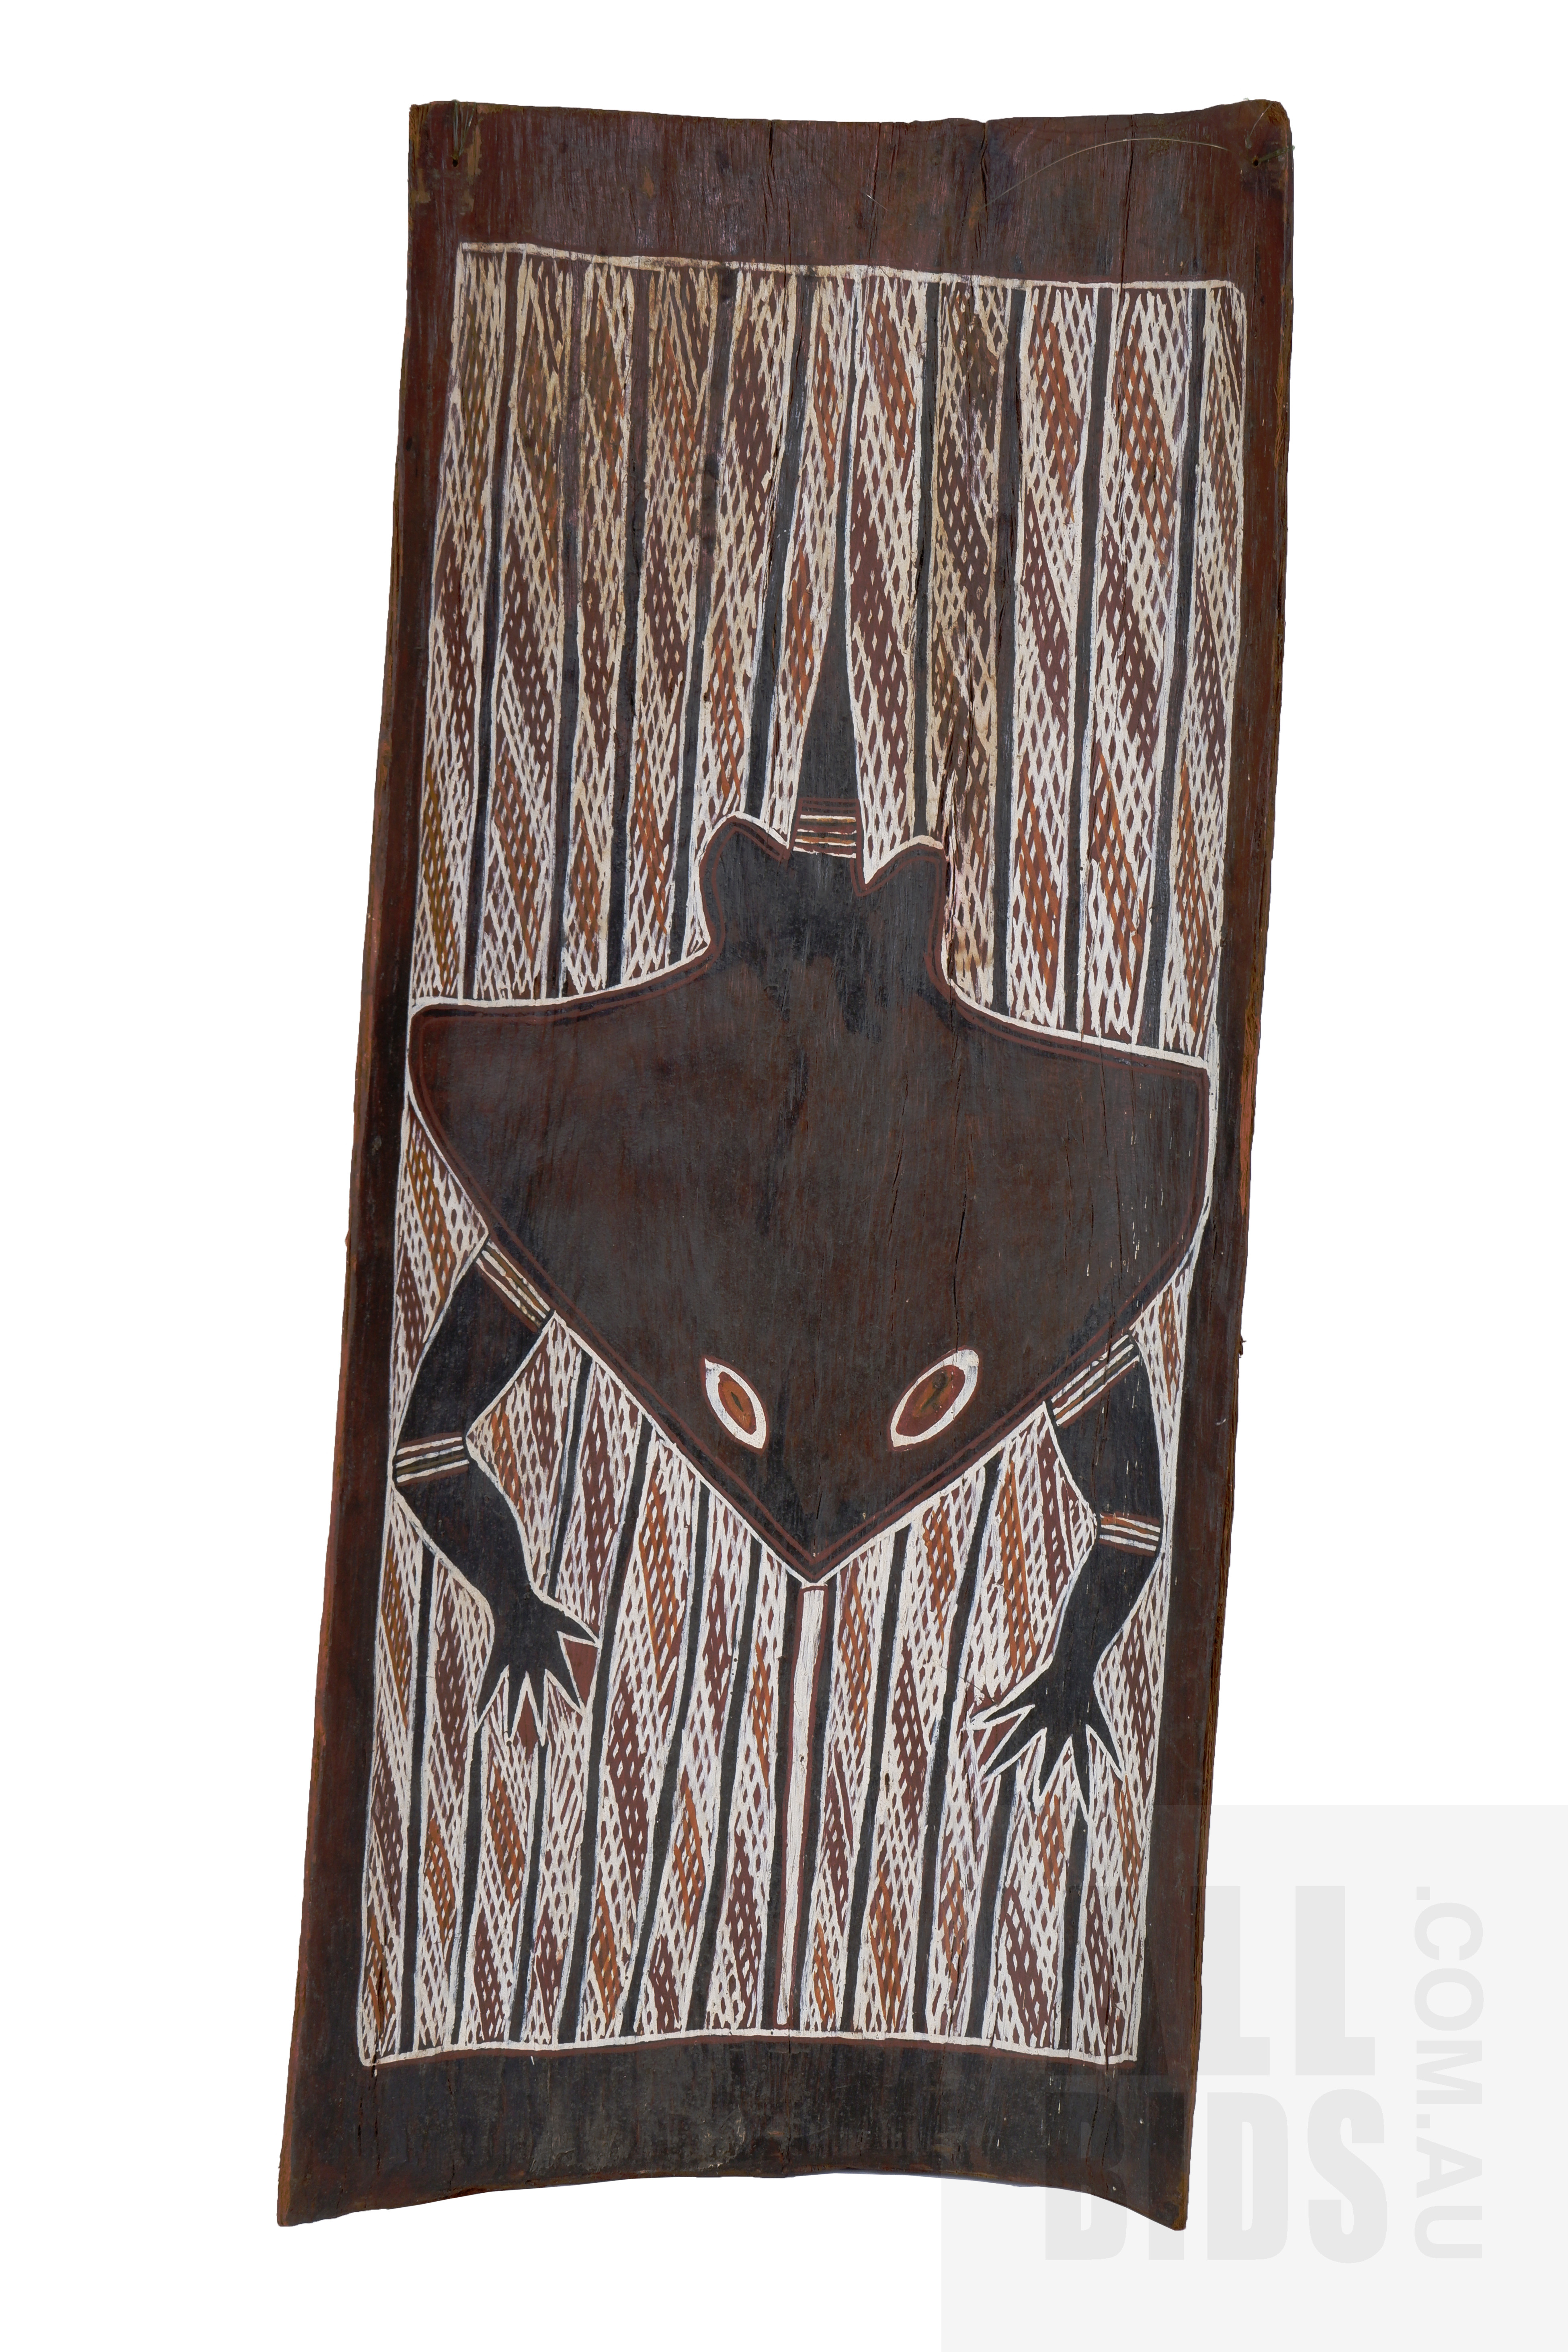 'A Bark Painting from Groote Eylandt Depicting a Stingray, Natural Earth Pigments on Eucalyptus Bark, 70 x 30 cm'